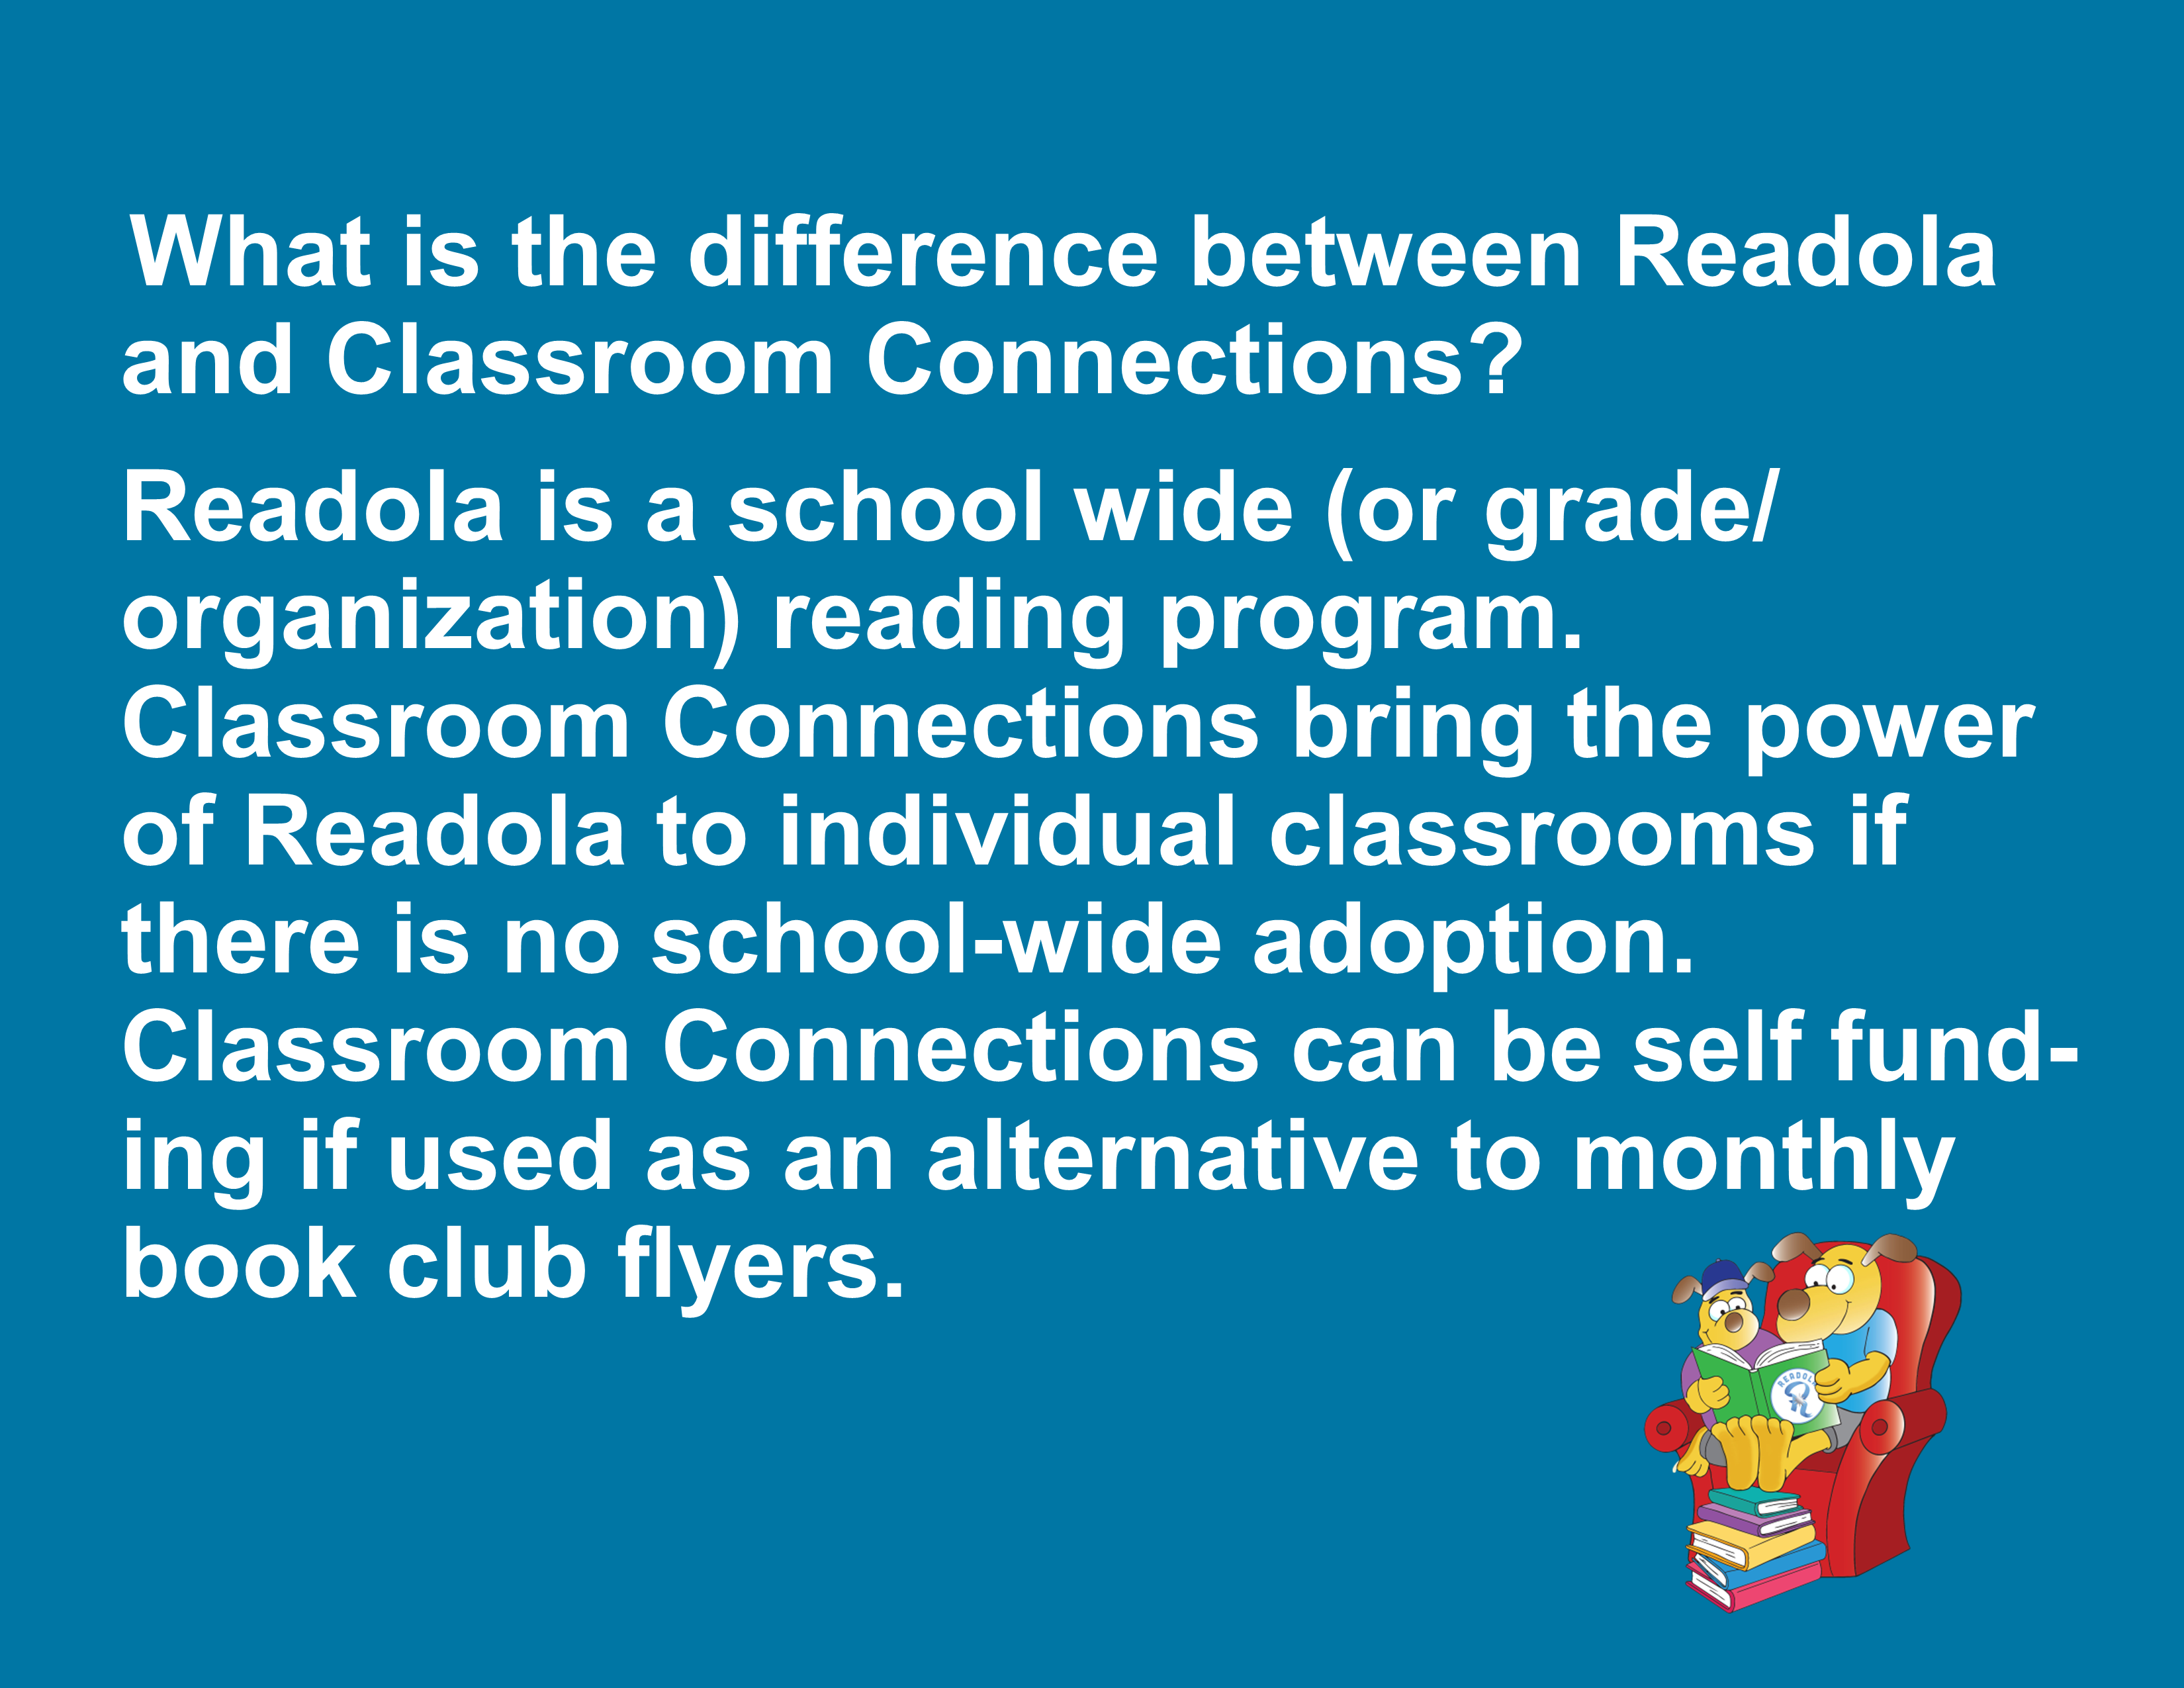 readoladiffclassroomconnect.png